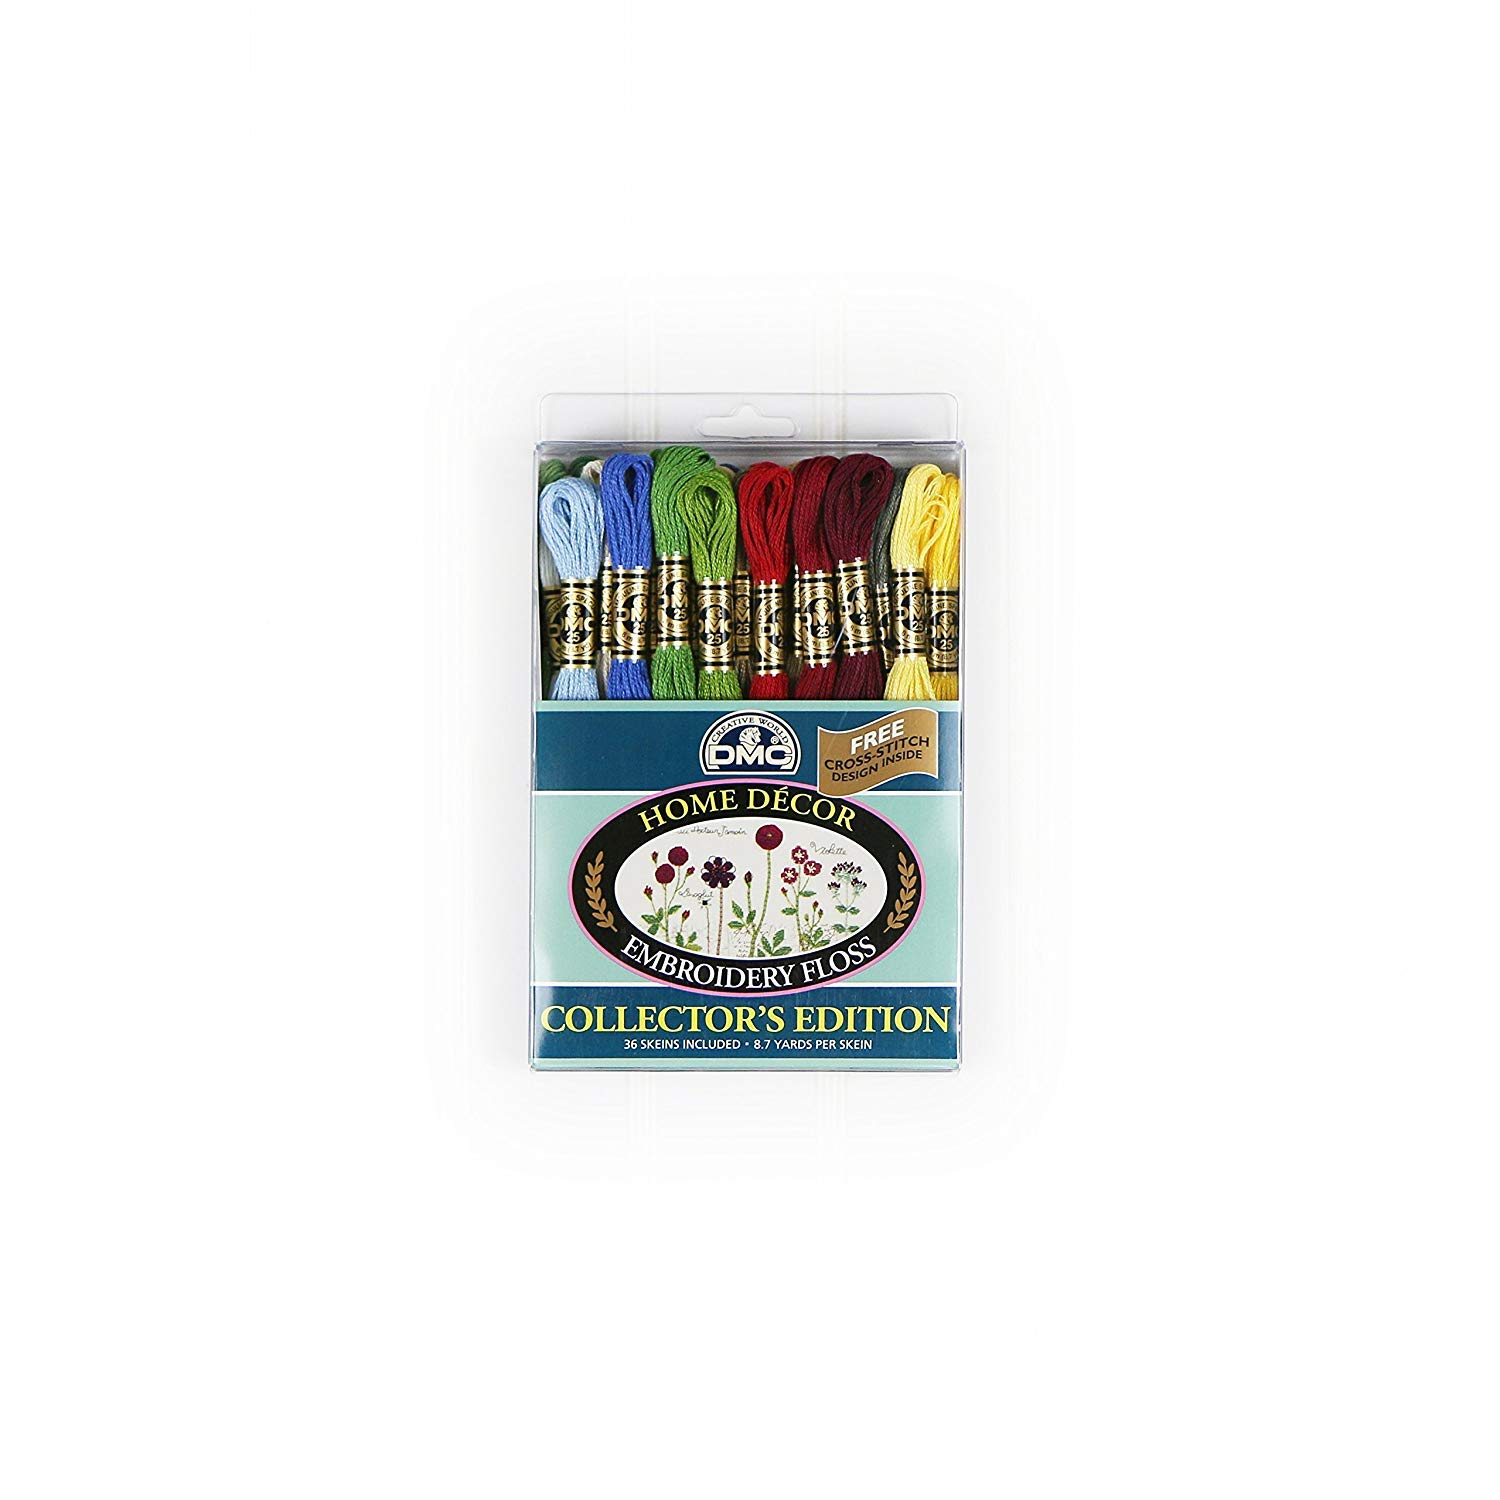 DMC Embroidery Floss Pack 8.7yd, Home Decor 36/Pkg (Limited Edition) by DMC